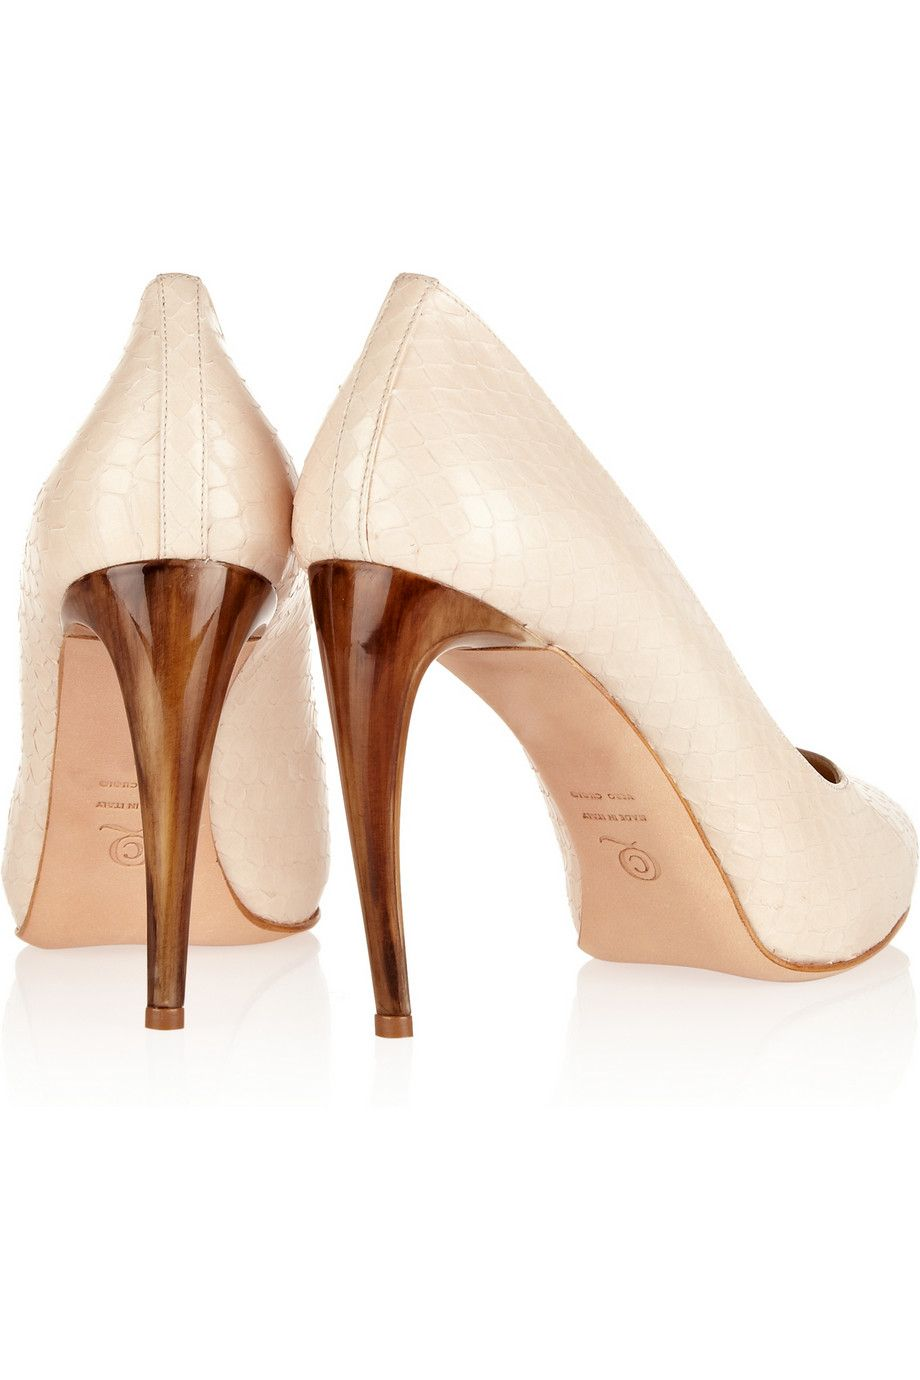 Alexander McQueen Snakeskin pumps - 60% Off Now at THE OUTNET